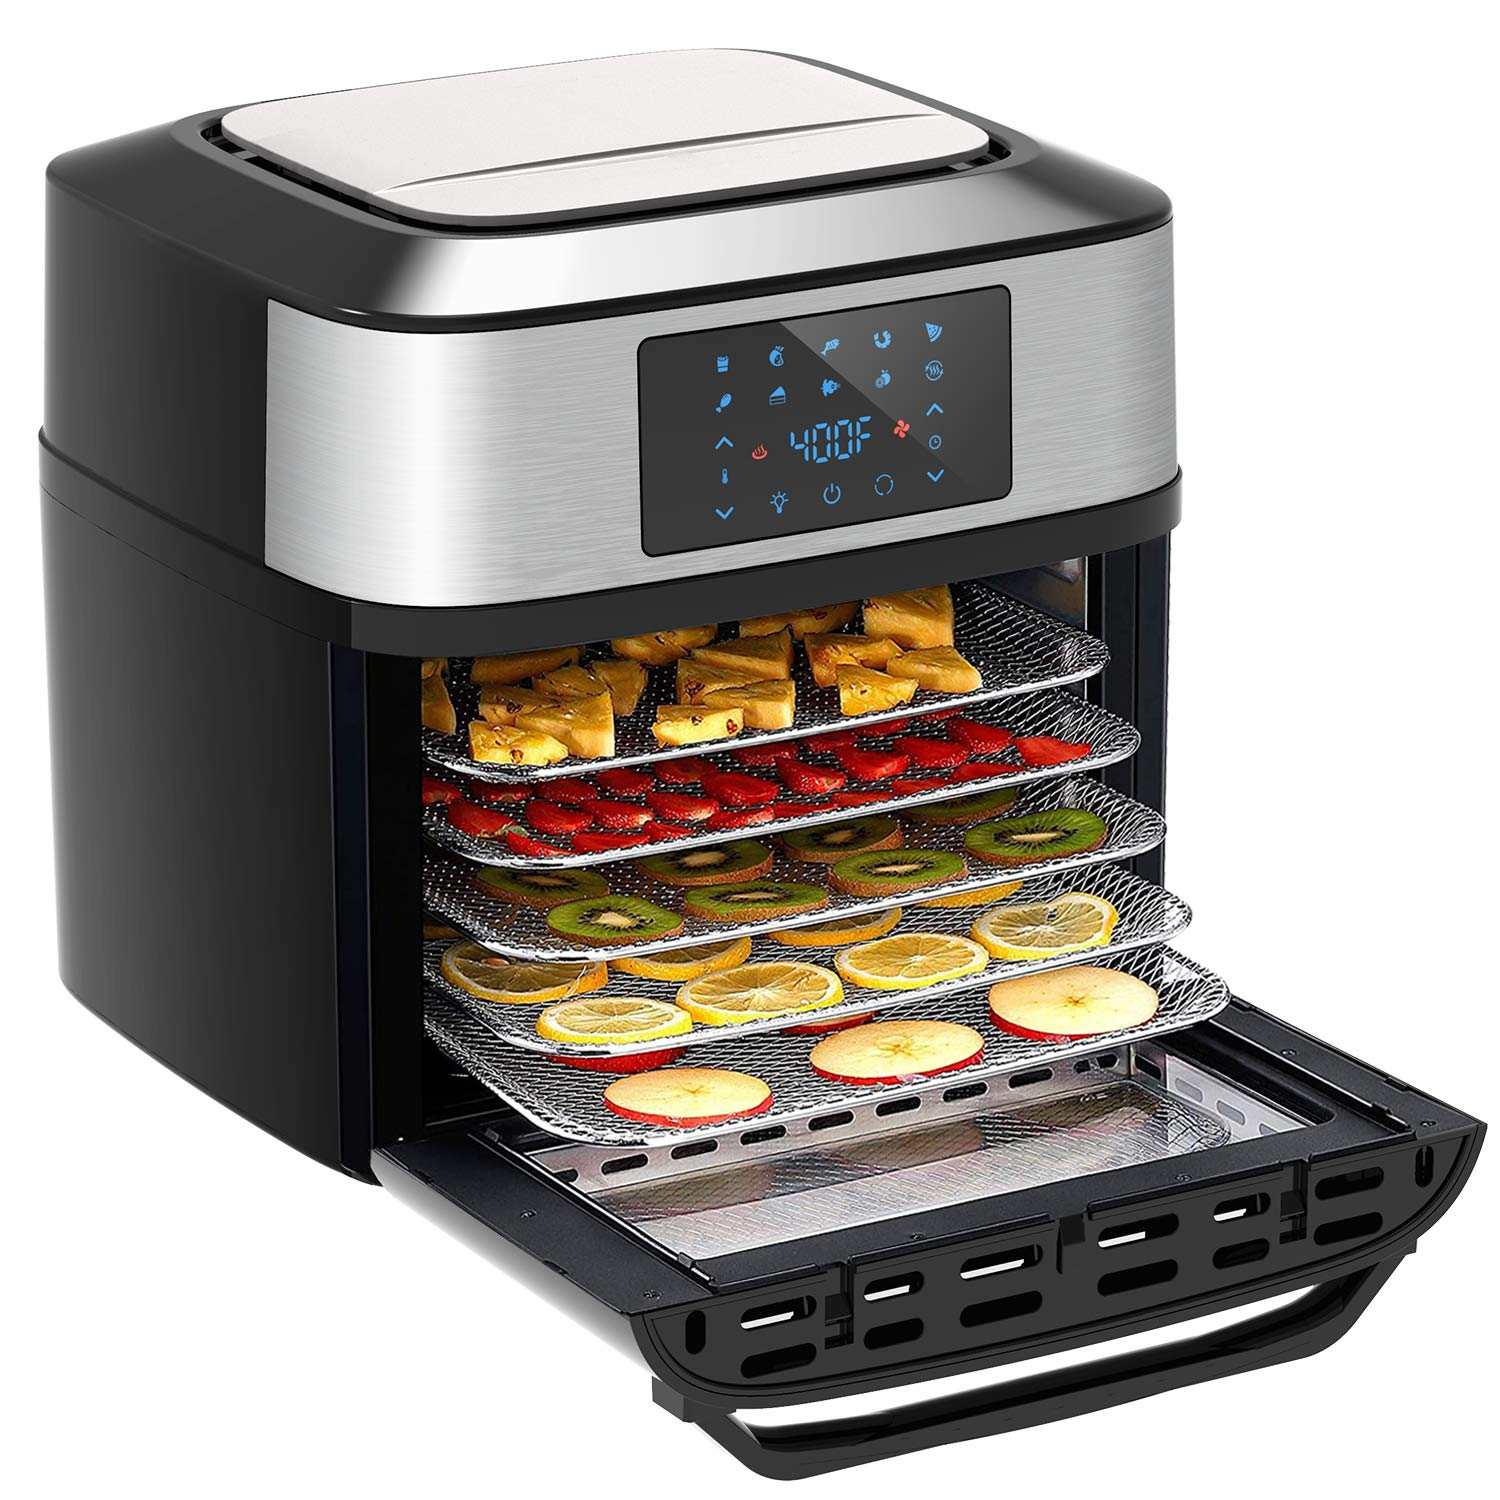 ovens-used-for-drying-dehydrating-food-fruit-vegetable-meat-herbs